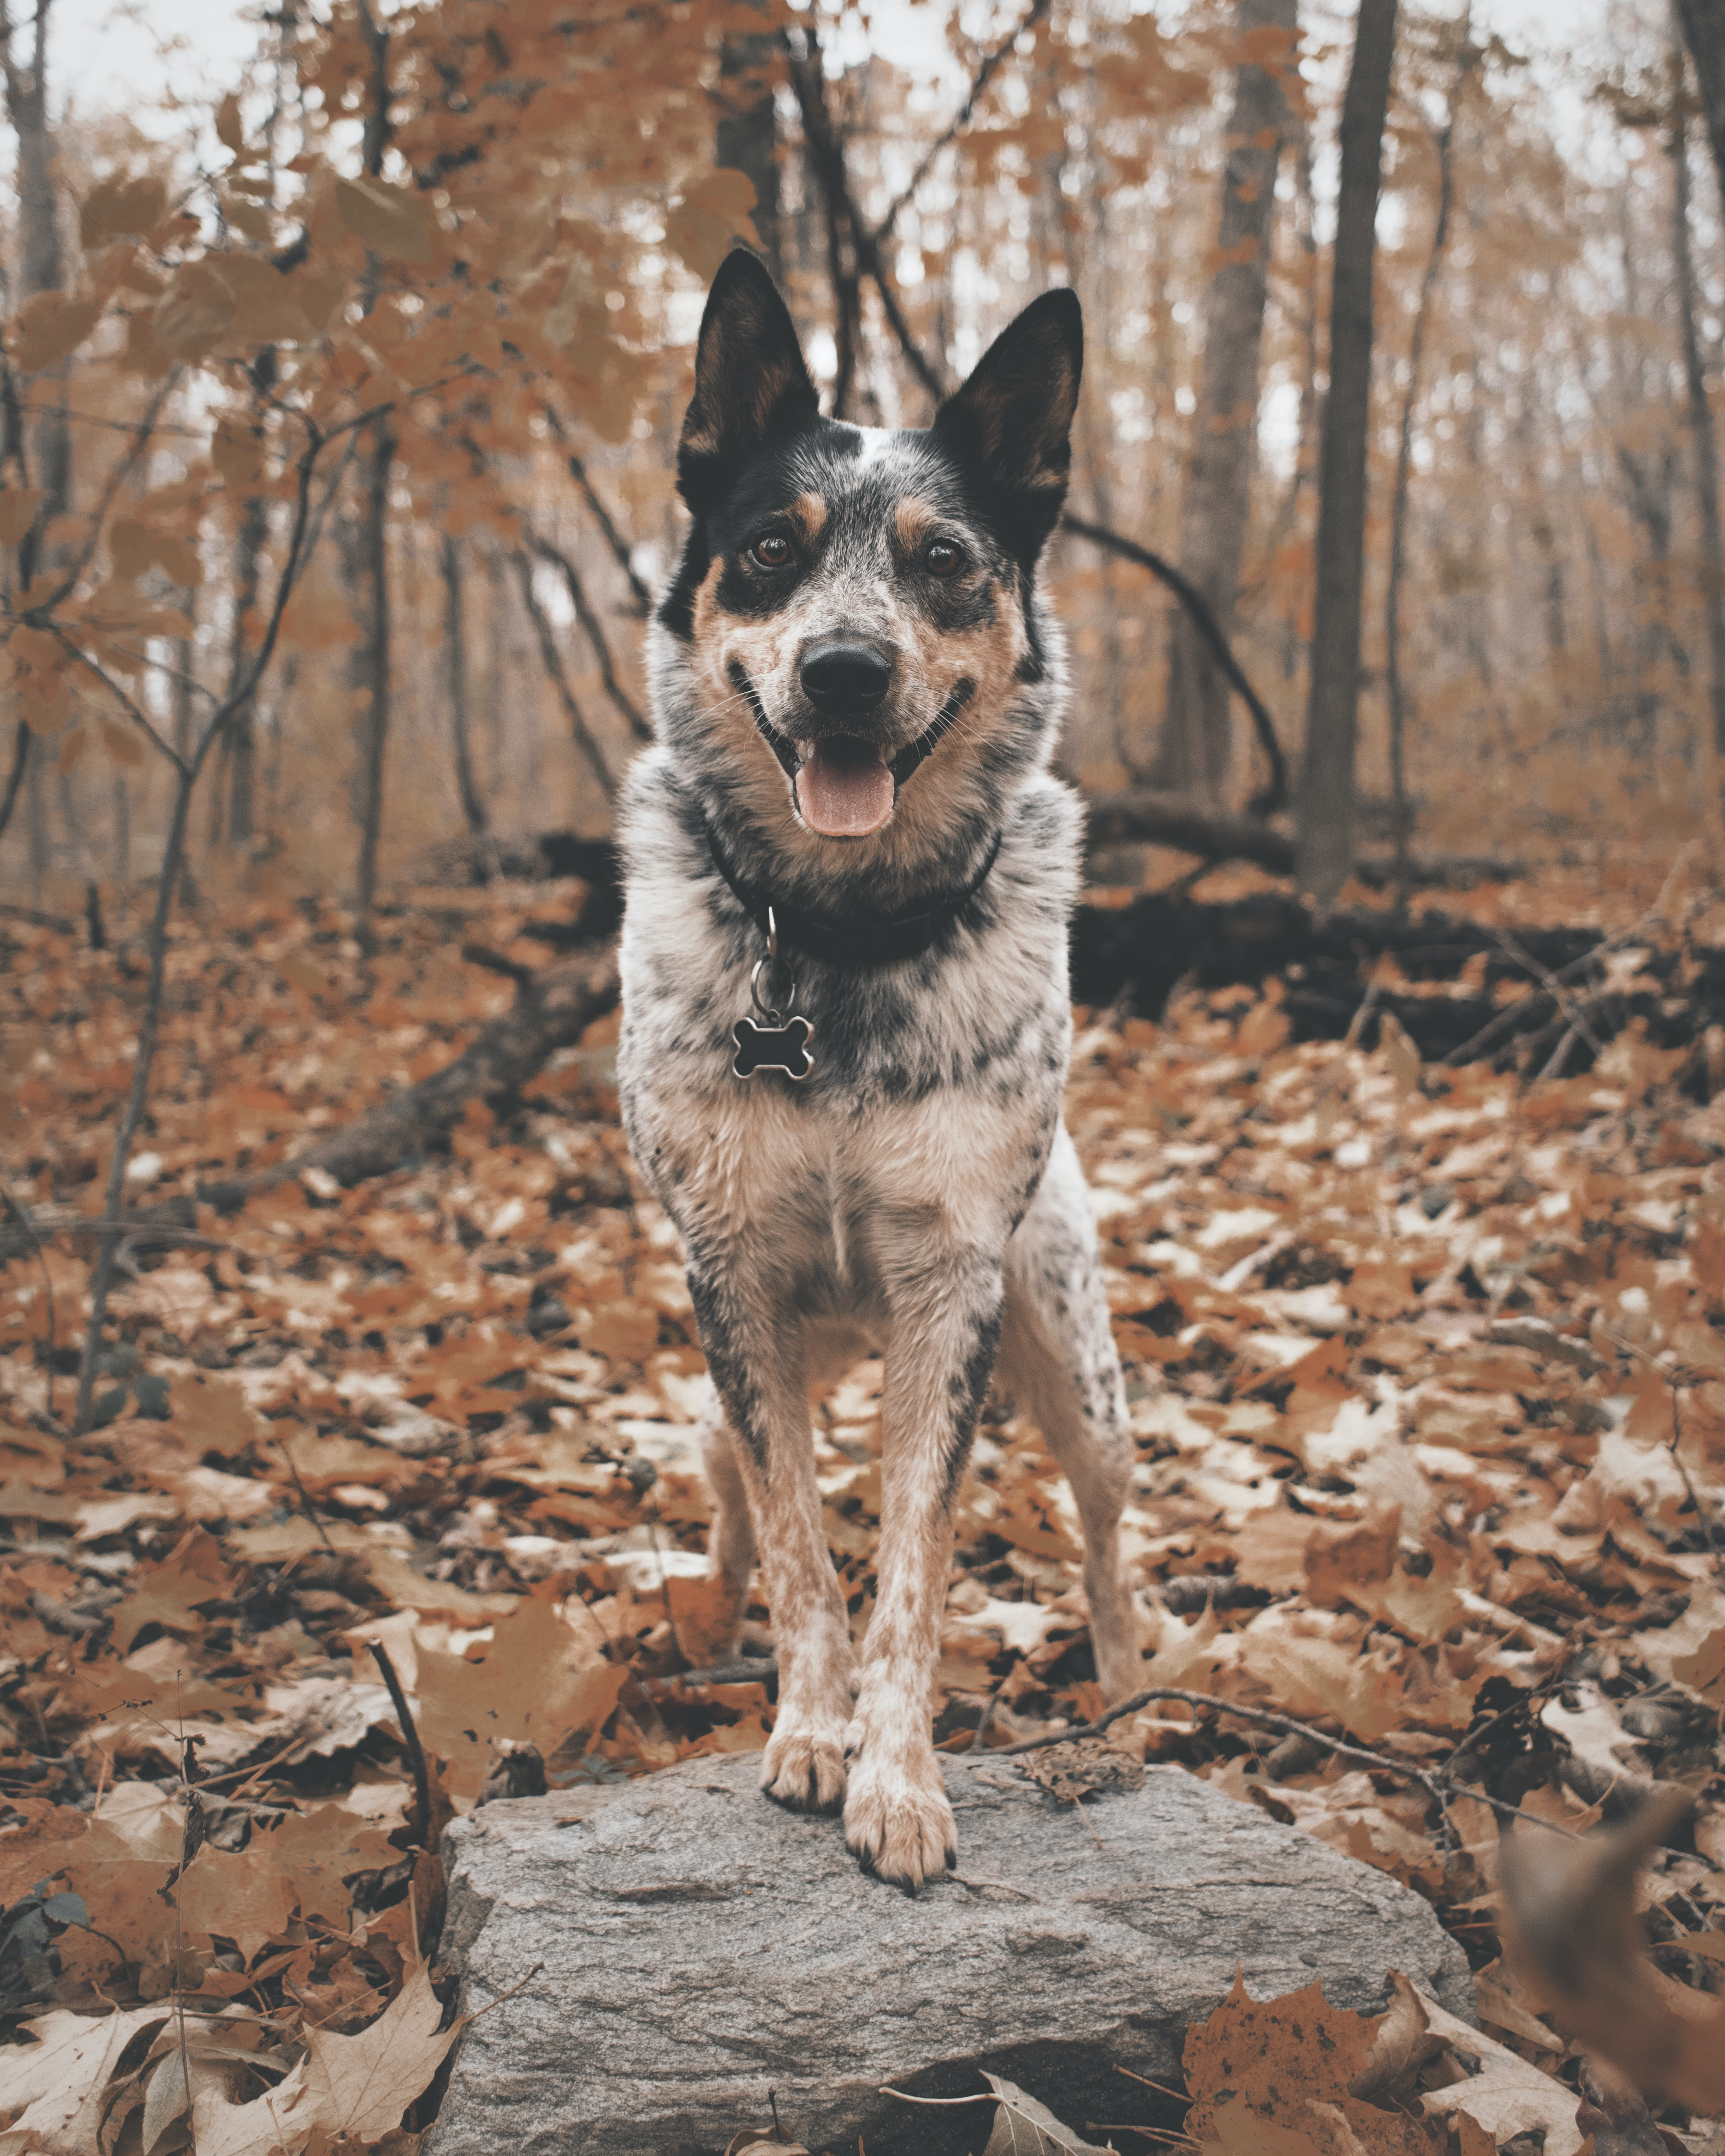 adult Australian cattle dog stepping on gray rock selective focus photography